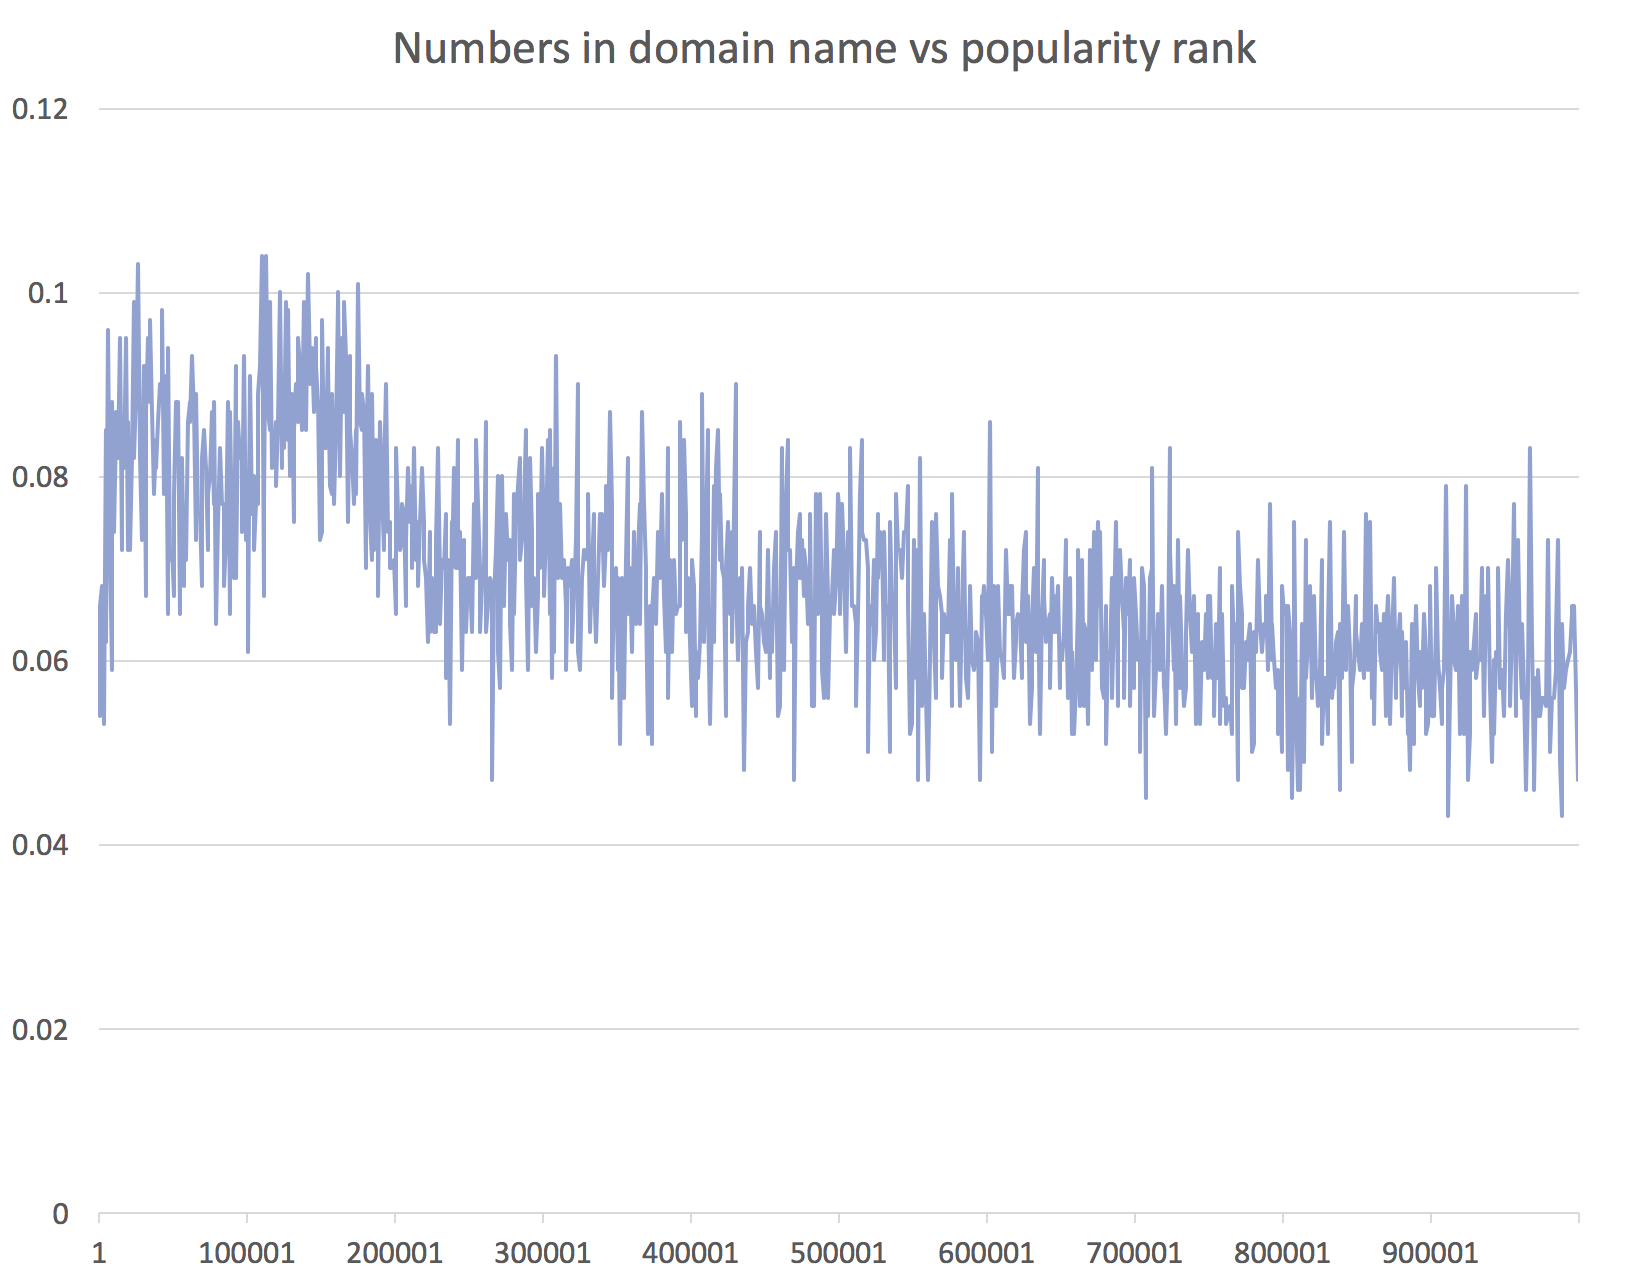 Numbers in domain names vs popularity